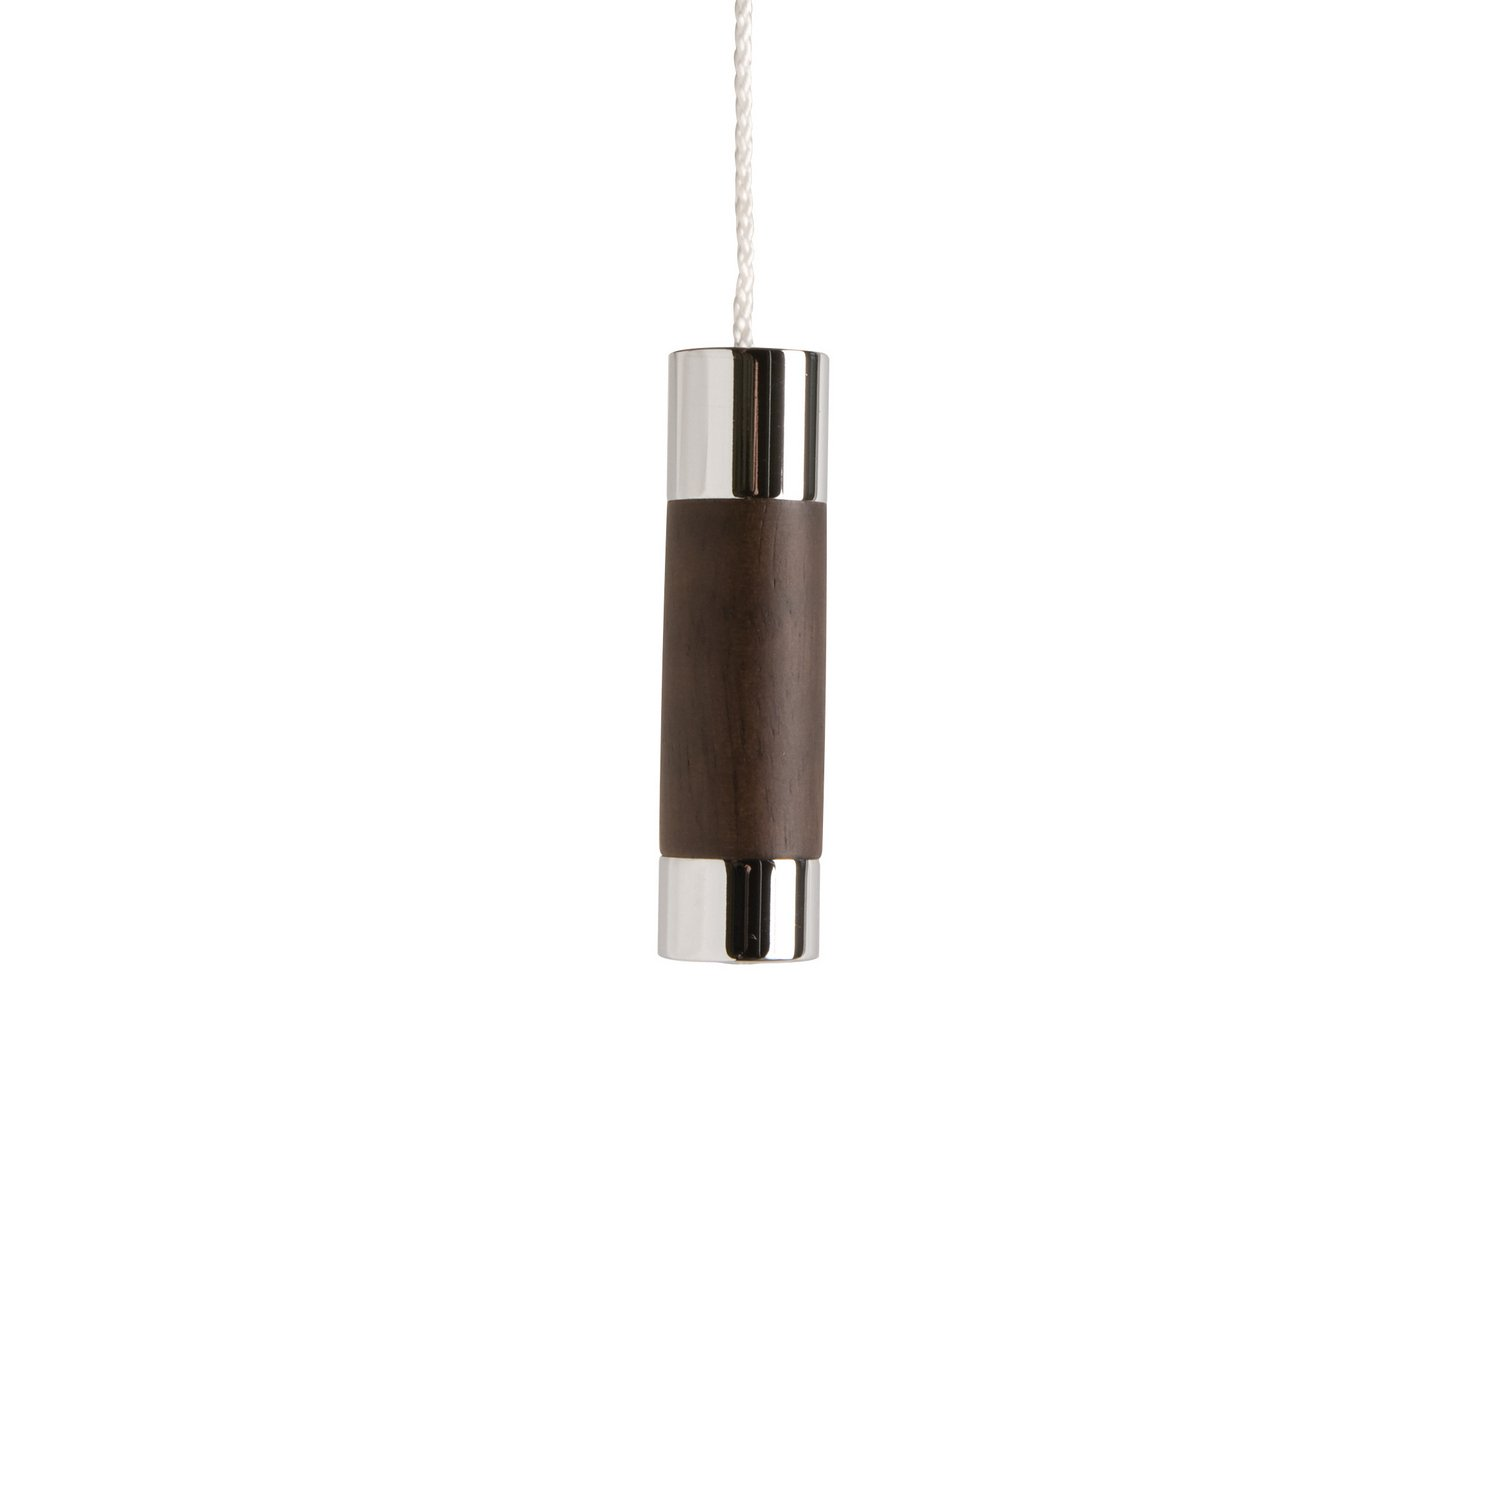 Classic Dark Wood Cylindrical Light Pull